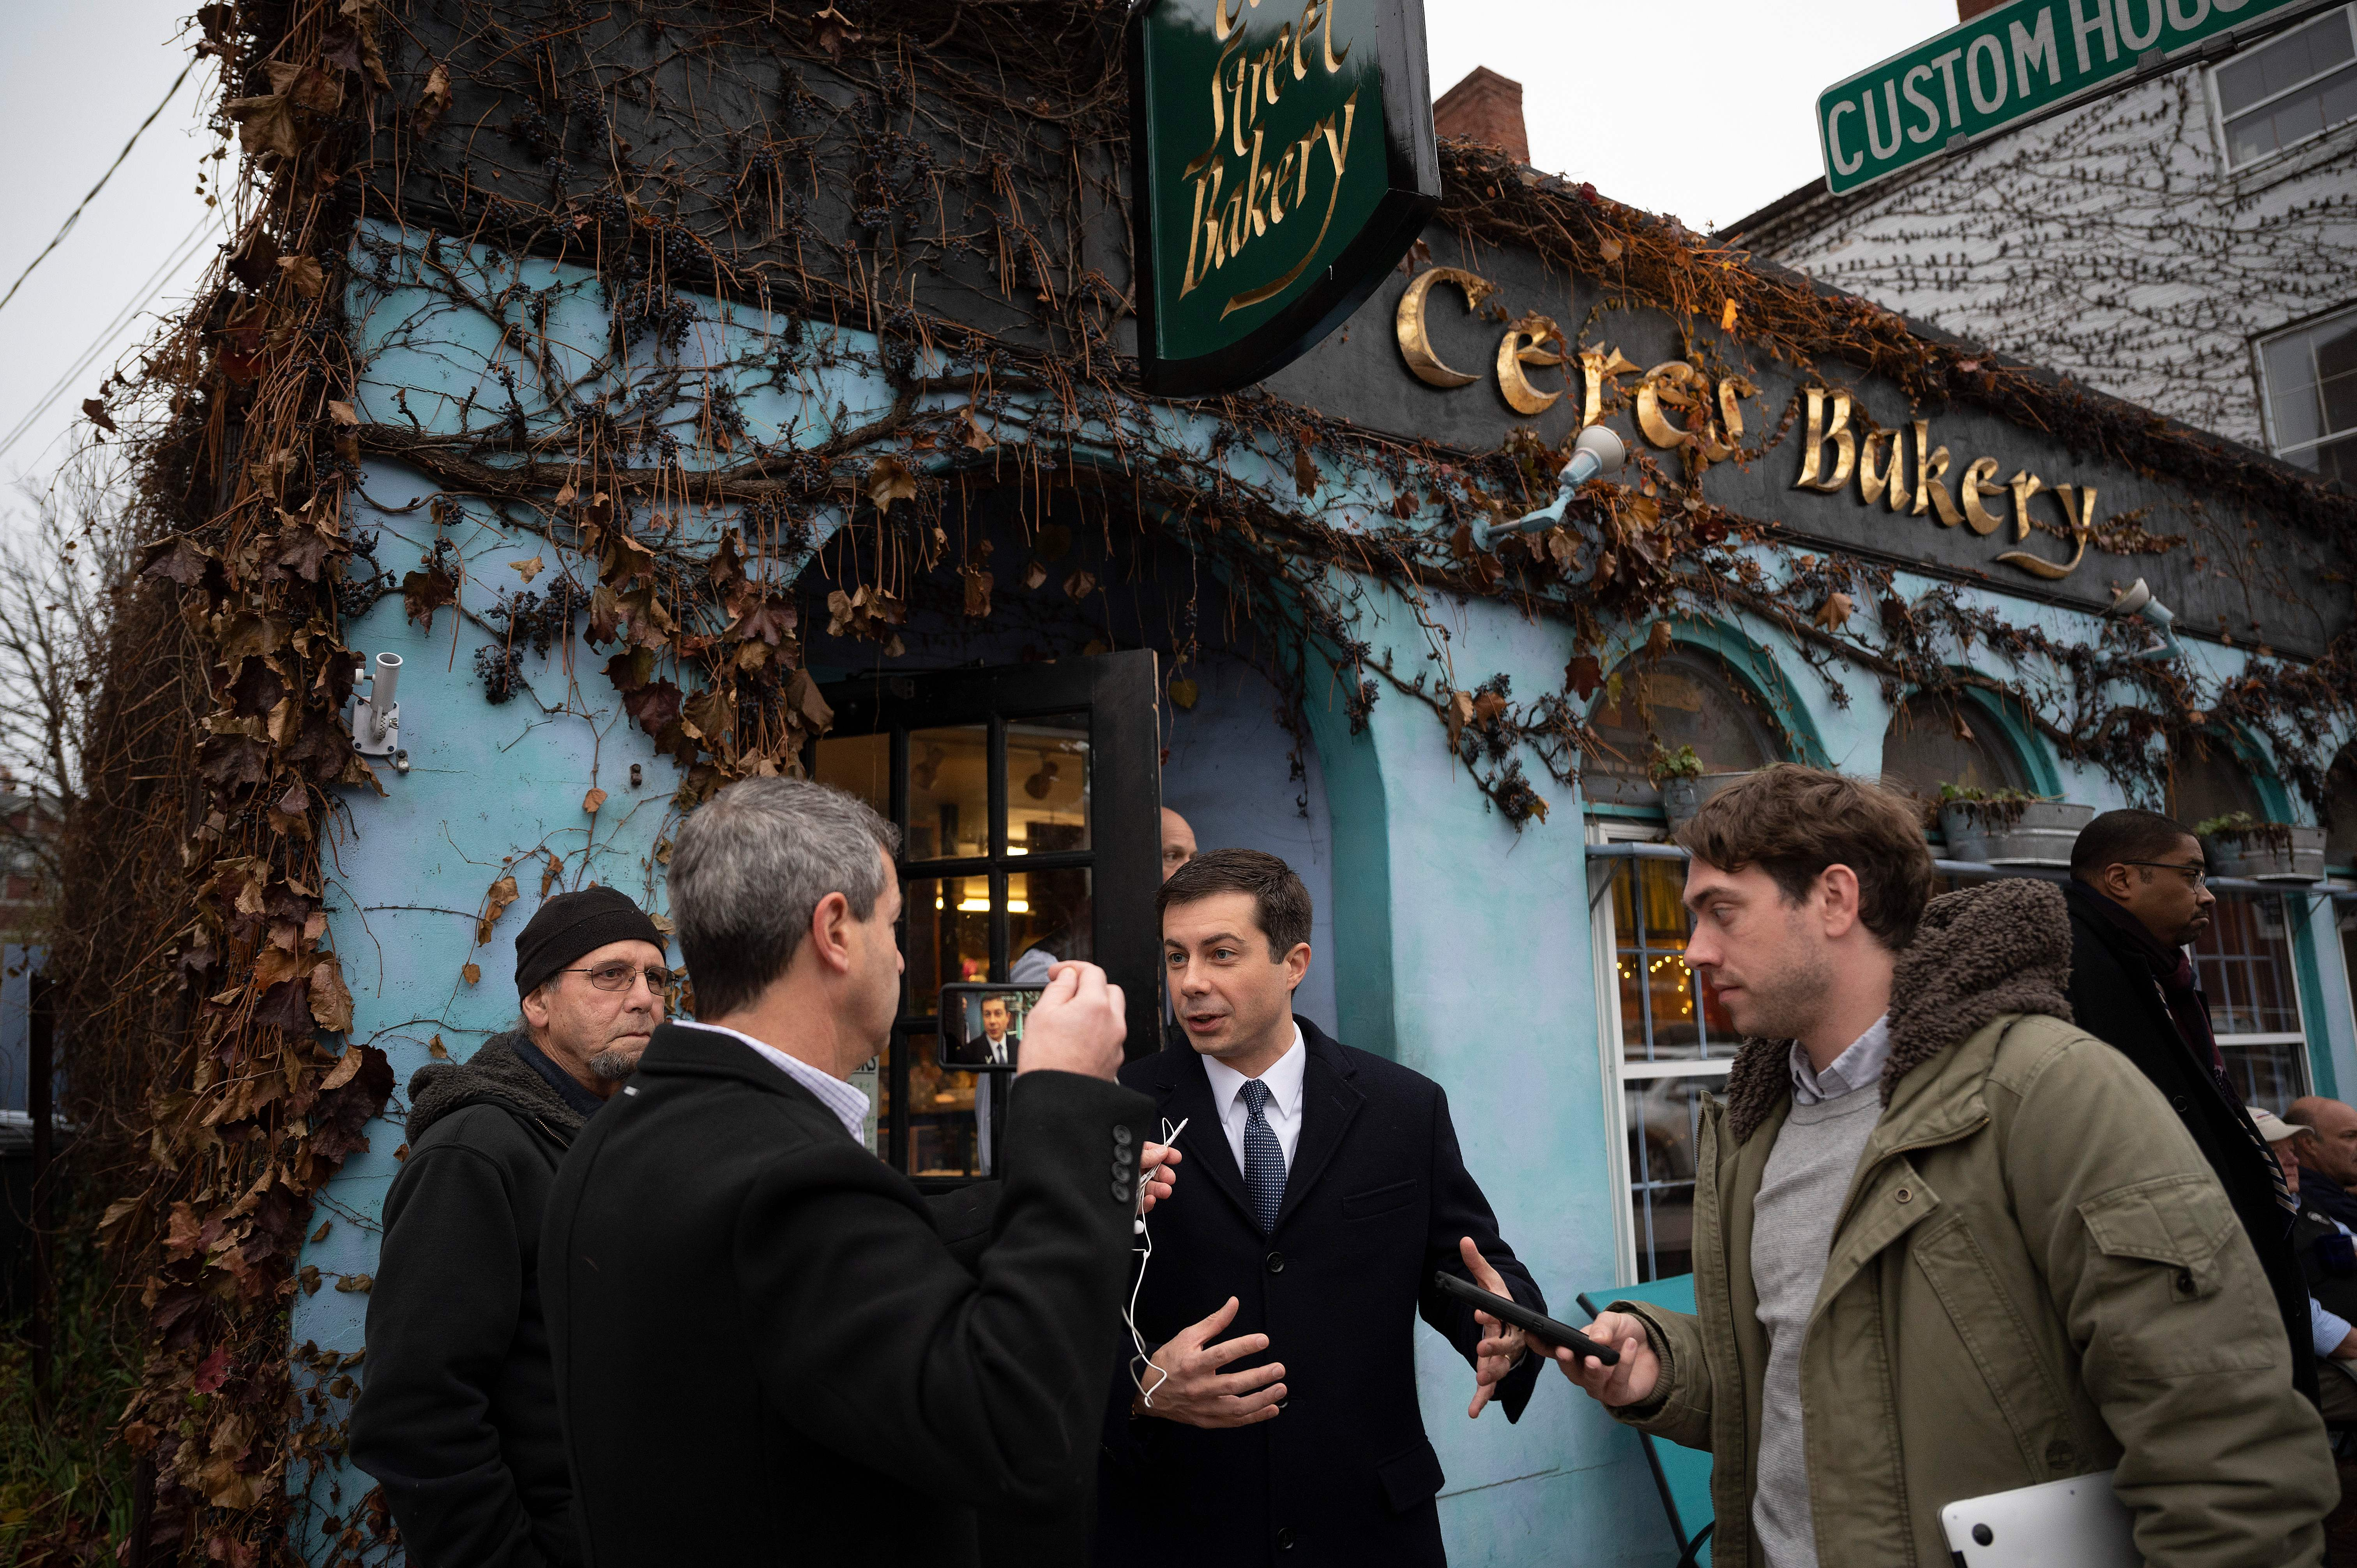 Democratic presidential hopeful Mayor Pete Buttigieg (C) speaks with a reporter as he departs Ceres Bakery in in Portsmouth, New Hampshire, on November 11, 2019, as he continues his 4-day bus tour of the state. - Pete Buttigieg is criss-crossing New Hampshire on a mission: to convince voters that a 30-something smalltown mayor with an unapologetically moderate message is the Democratic Party's best shot at ousting President Donald Trump. (Photo by JIM WATSON / AFP) (Photo by JIM WATSON/AFP via Getty Images)